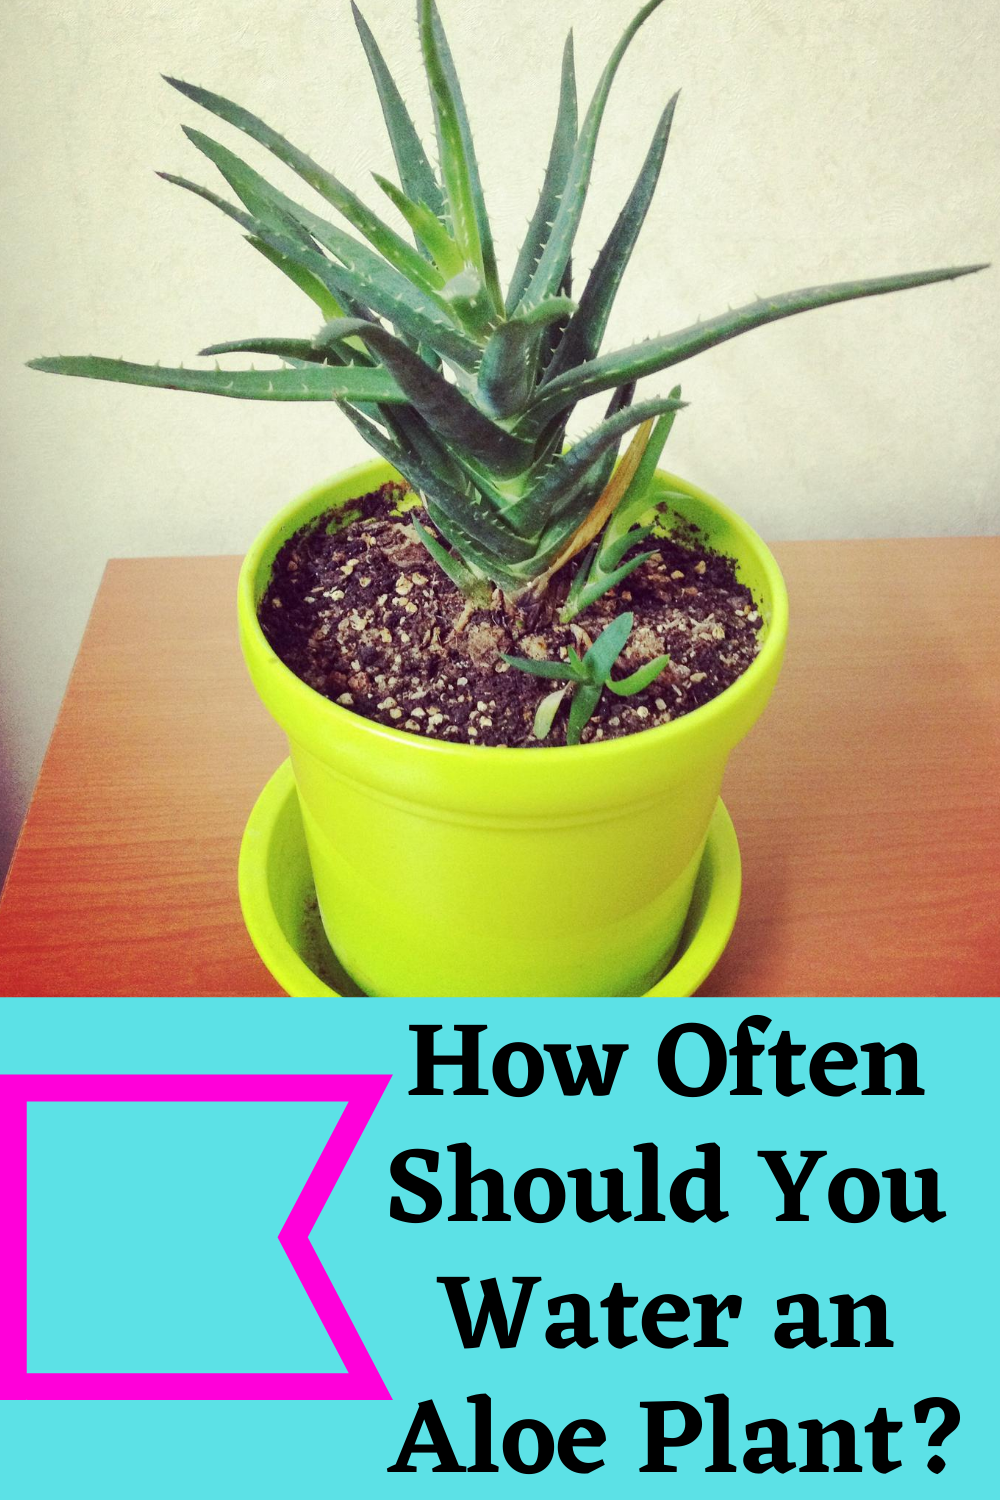 How Often Should You Water An Aloe Plant Aloe Plant Aloe Vera Plant Aloe